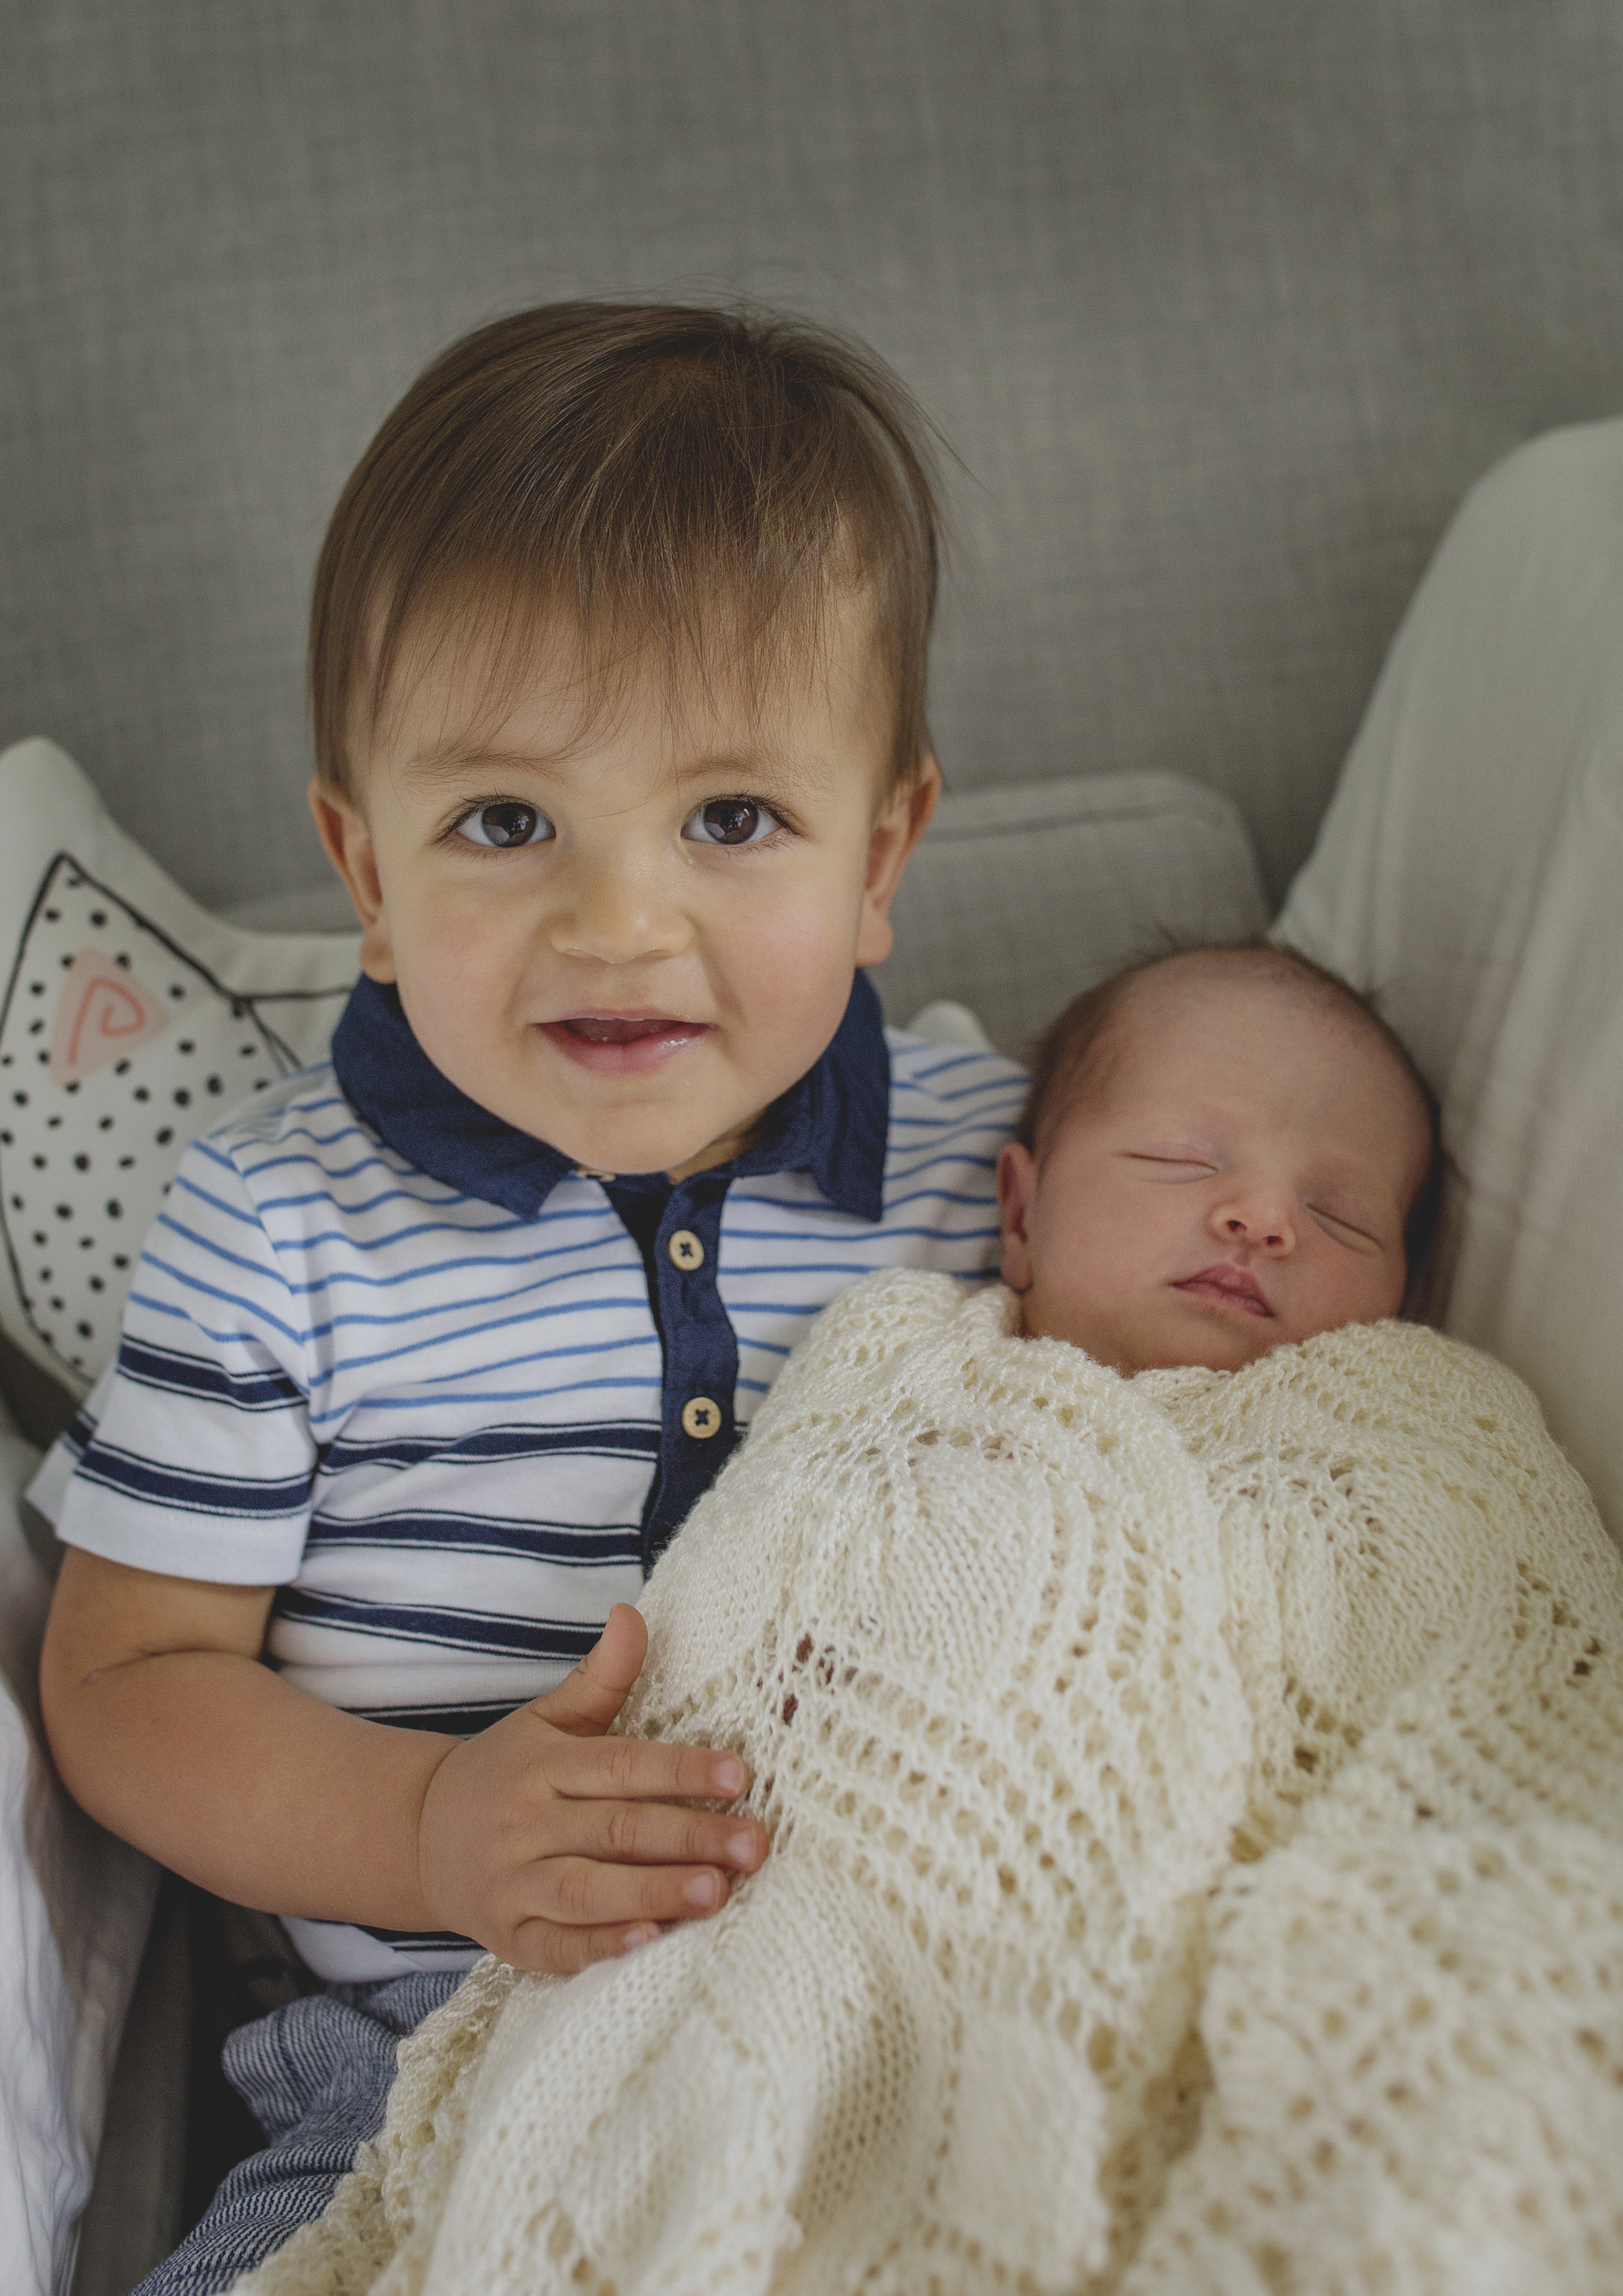 Big brother now has a newborn baby sister